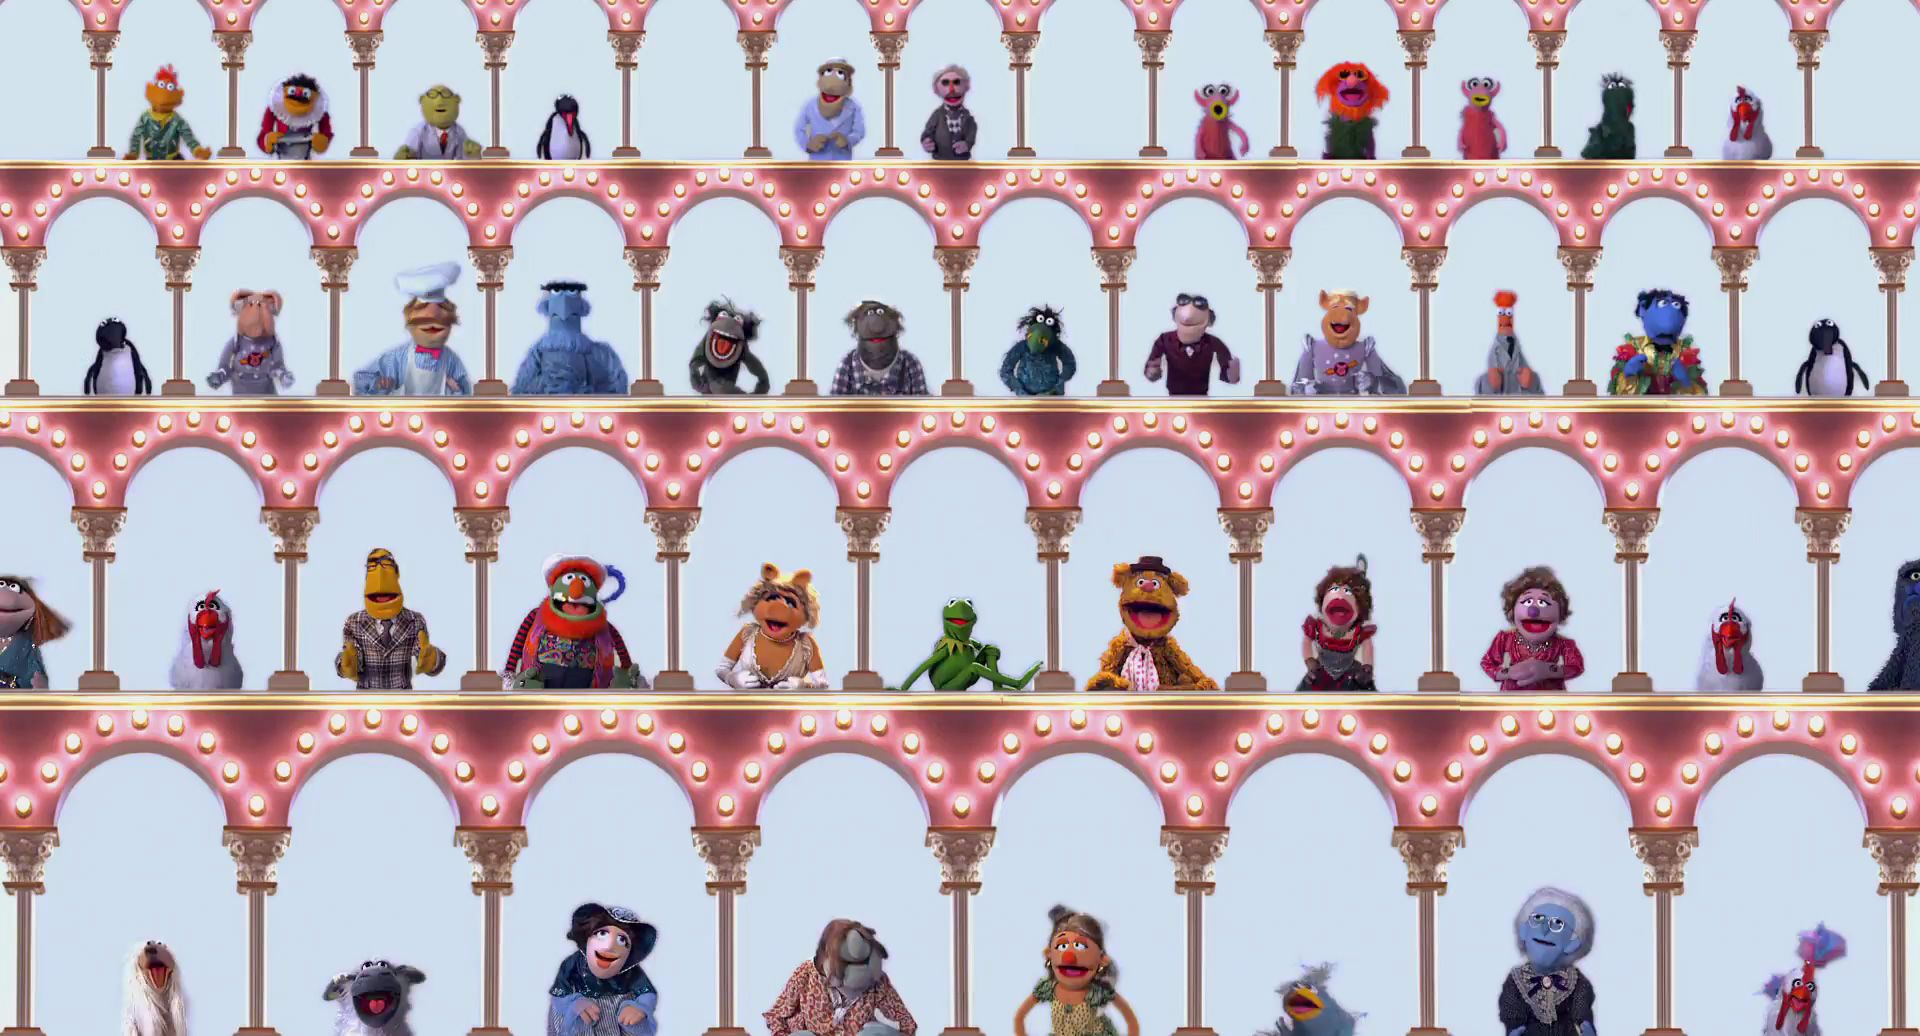 Image from The Muppet Show intro showing muppets in a colonnade like people in Zoom windos